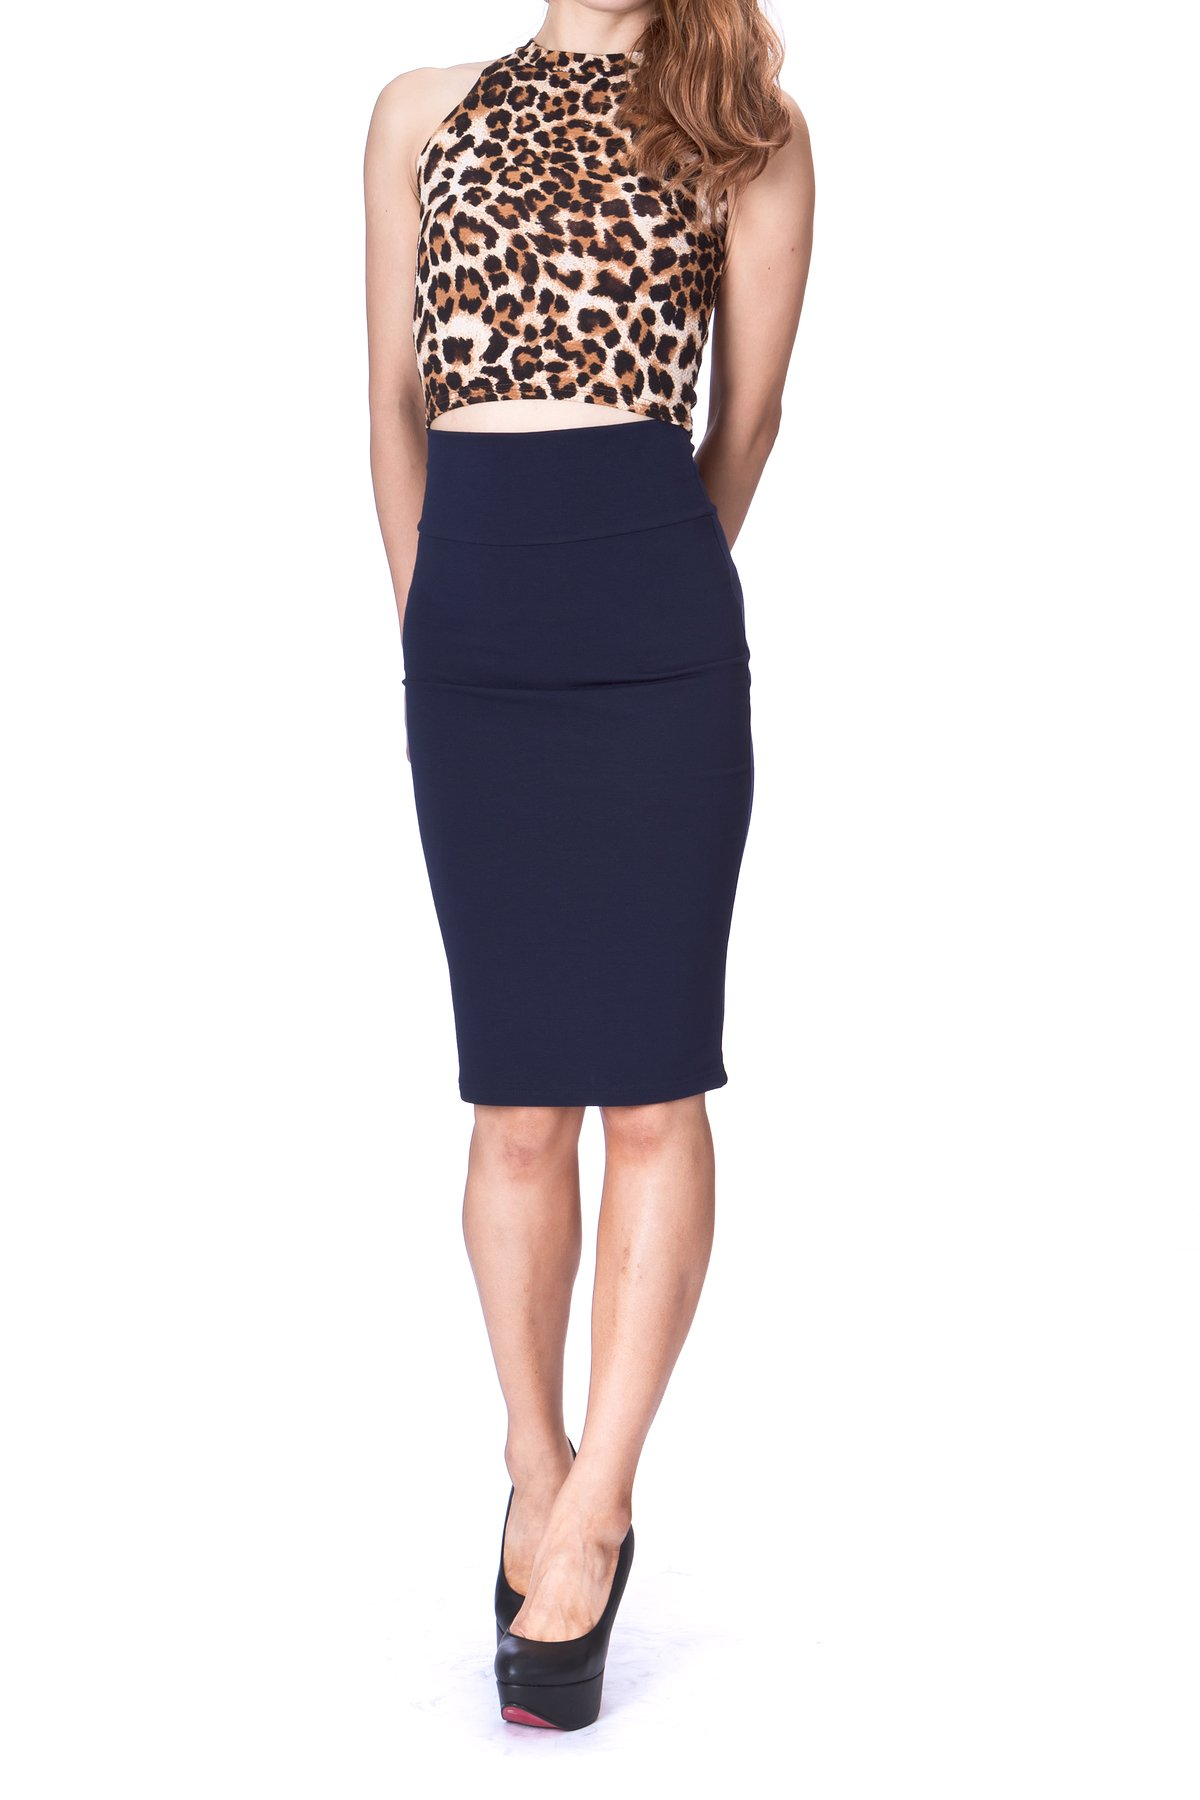 Every Occasion Stretch Pull on Wide High Waist Bodycon Pencil Knee Length Midi Skirt Navy 1